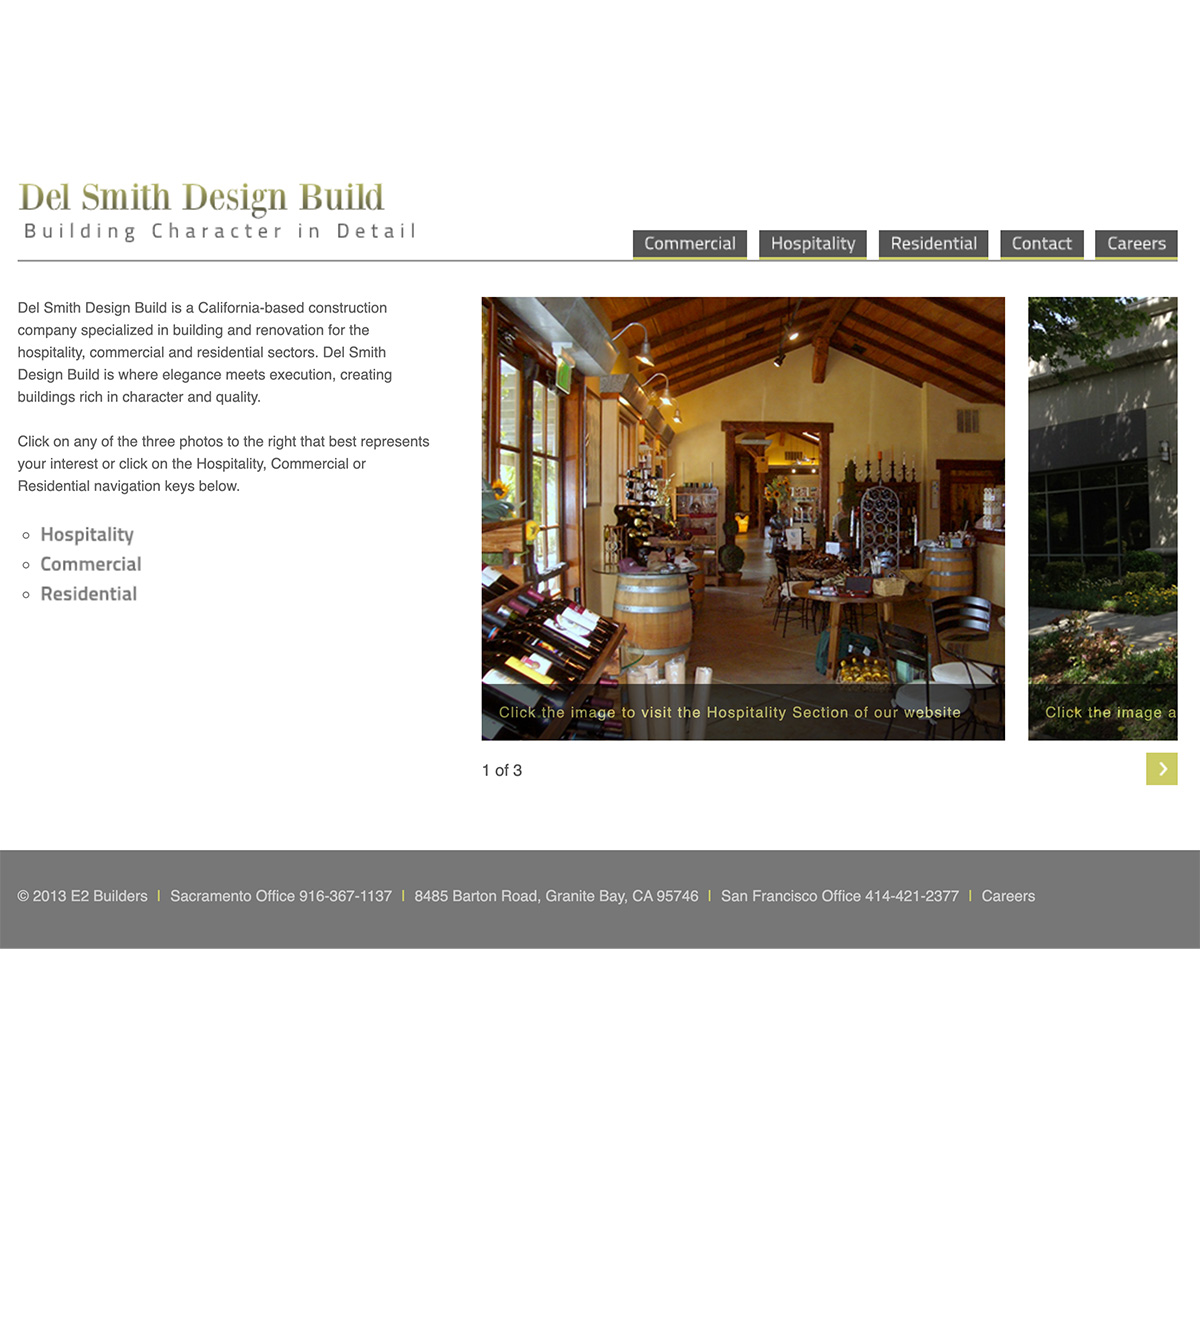 DelSmithDesignBuild before image design